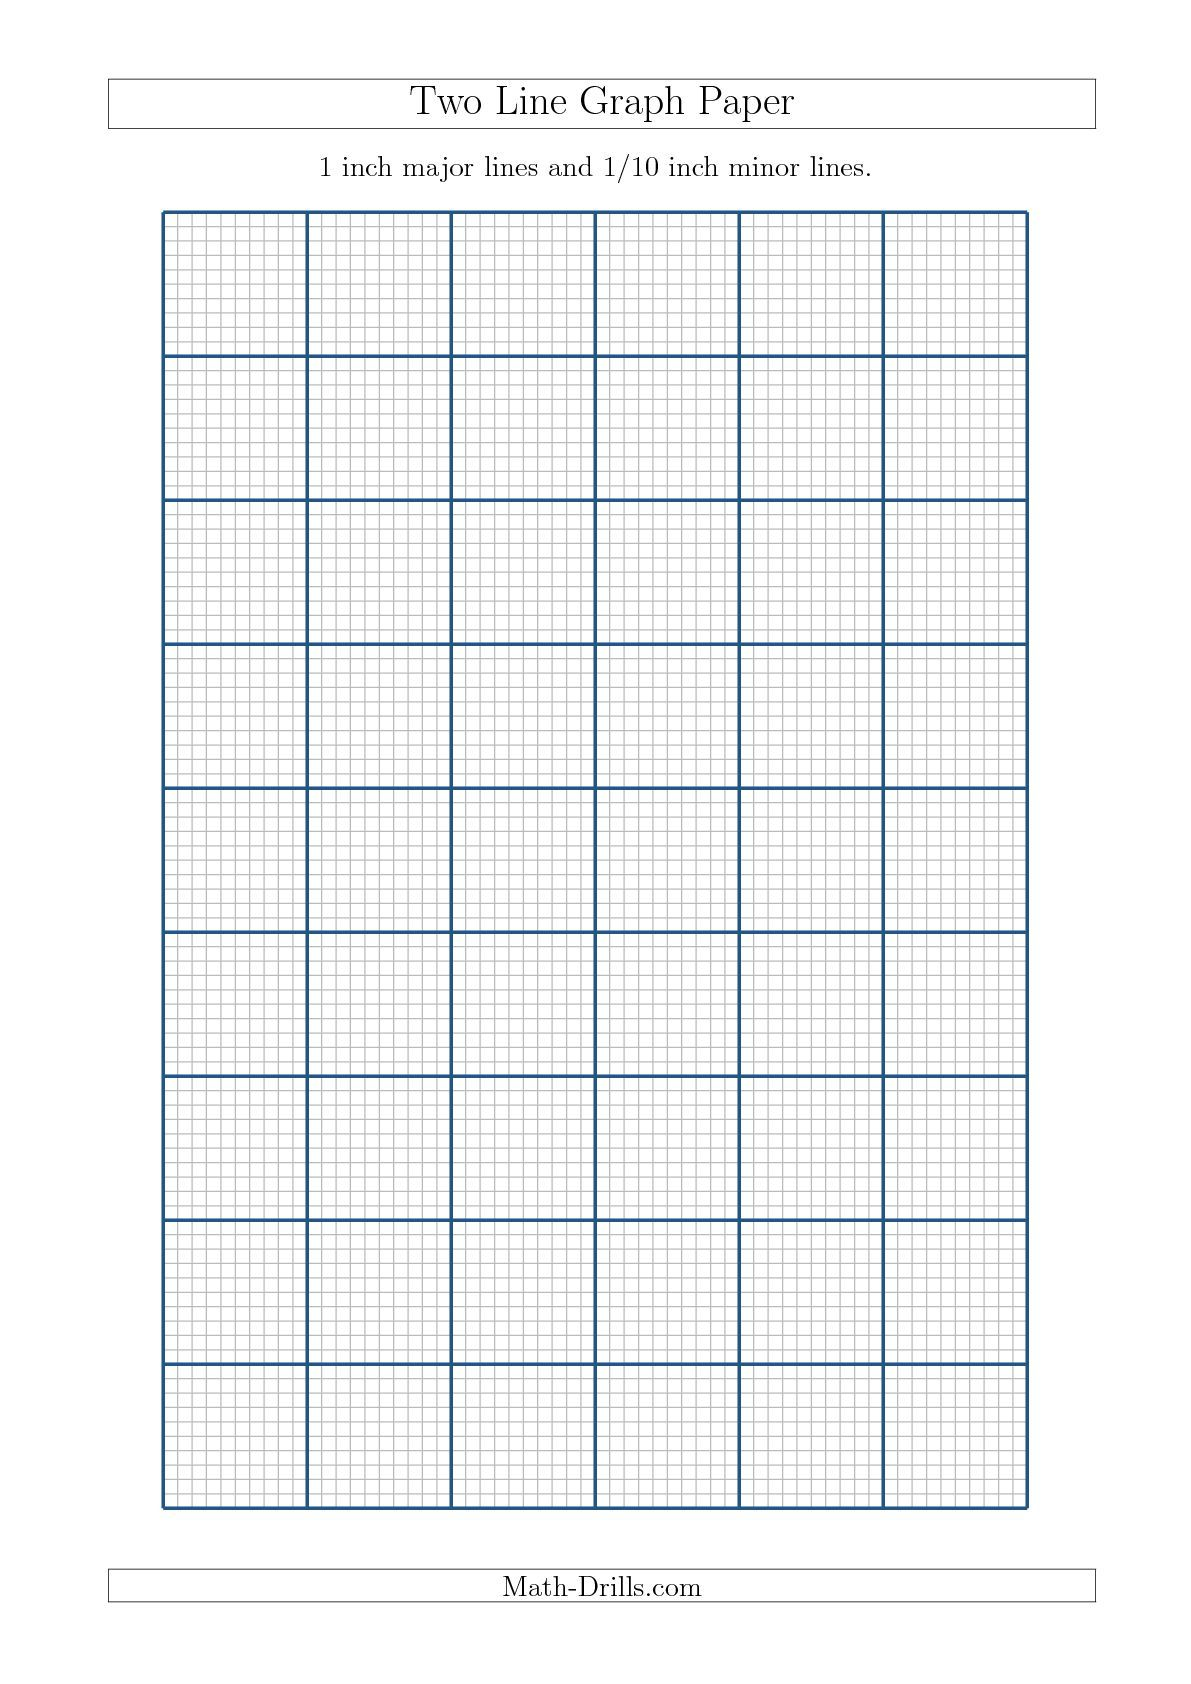 New A4 Sizes Added 09 18 Two Line Graph Paper With 1